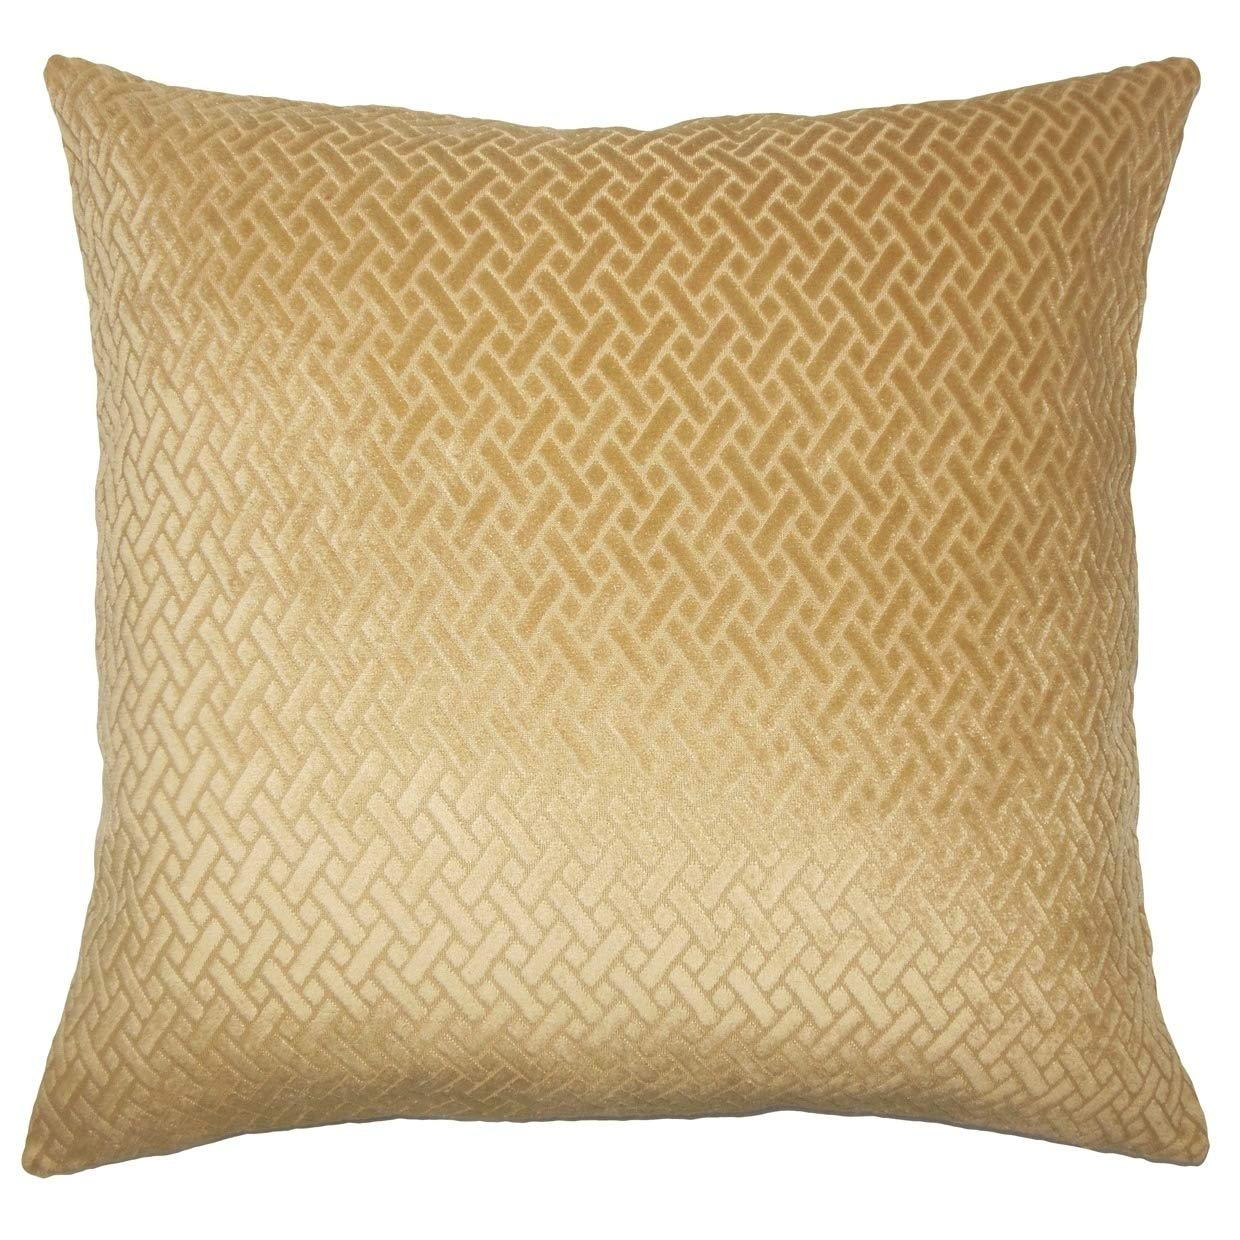 Amazon.com: The Pillow Collection Delora Solid Down - Cojín ...